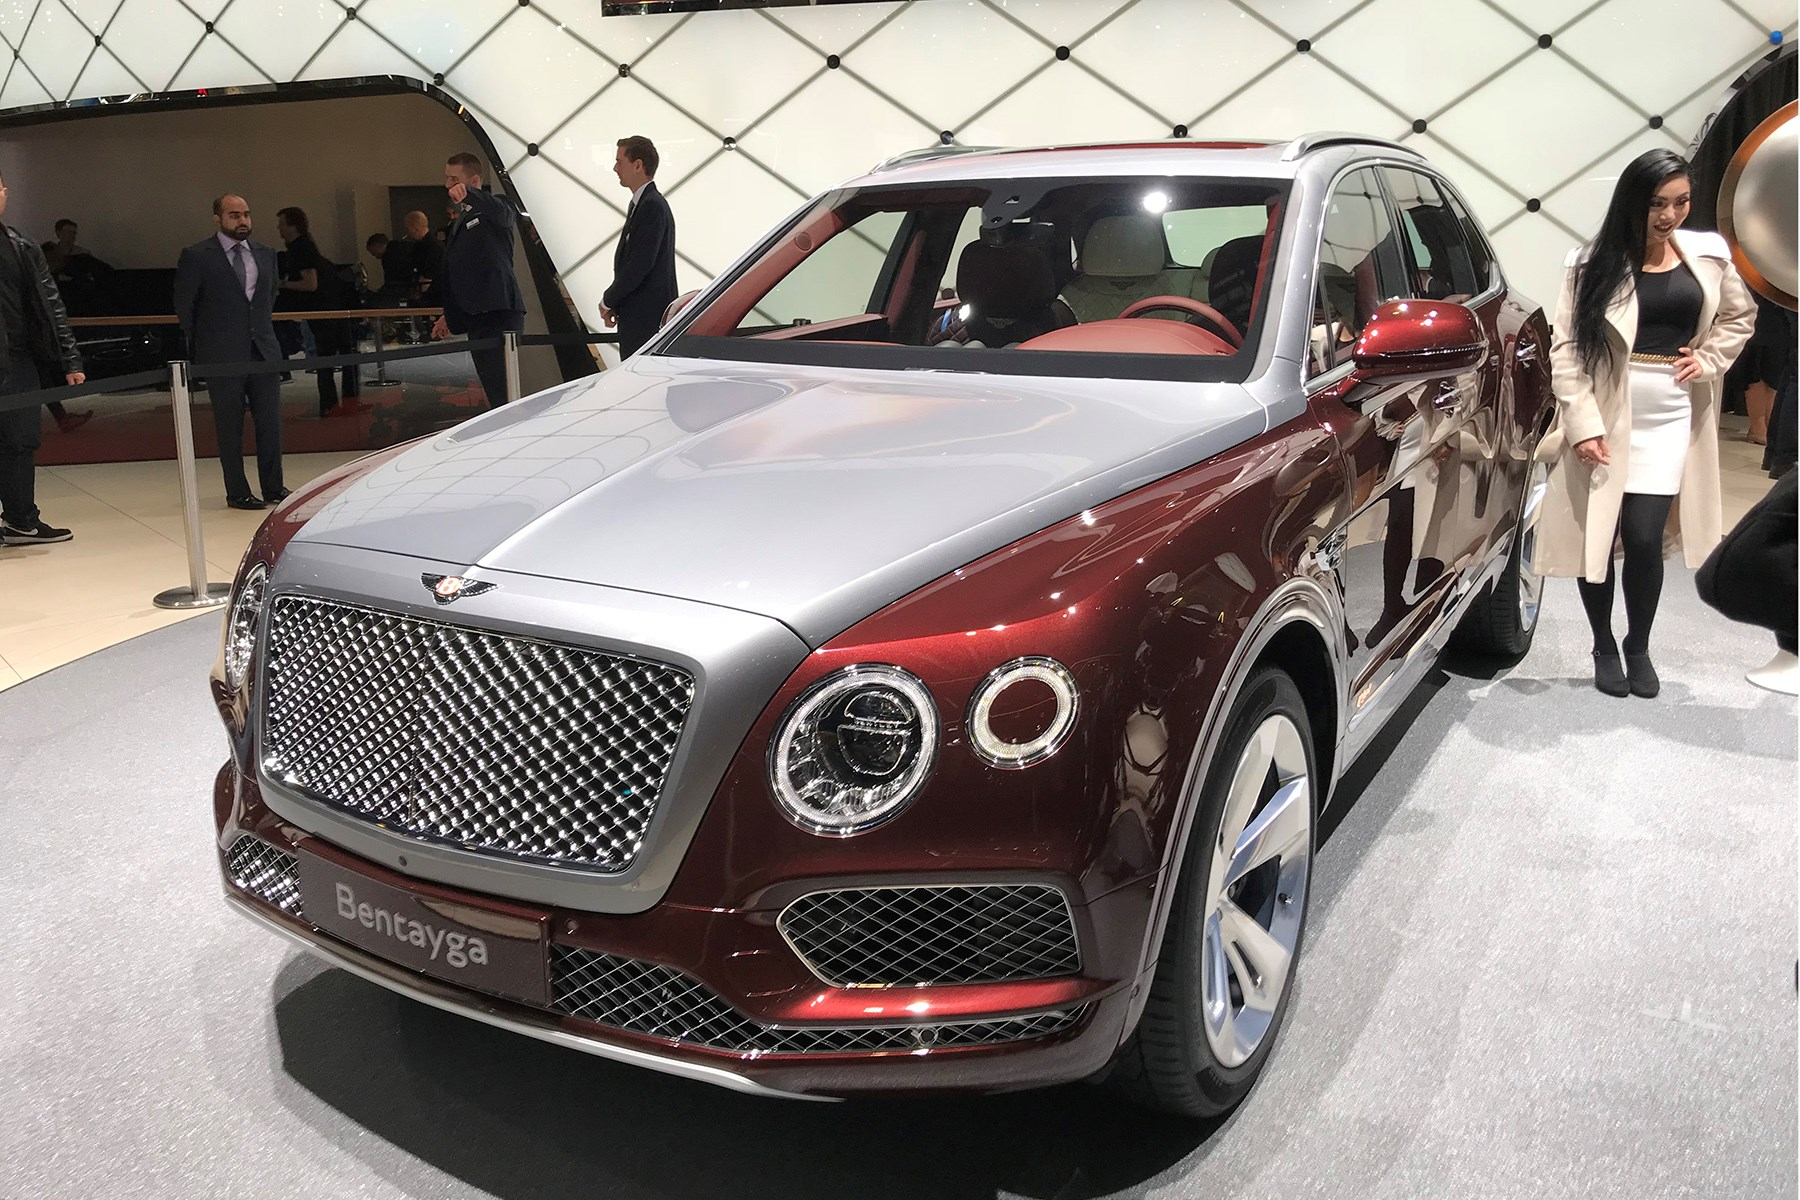 express bentayga bentley new jeep review ice diesel auto